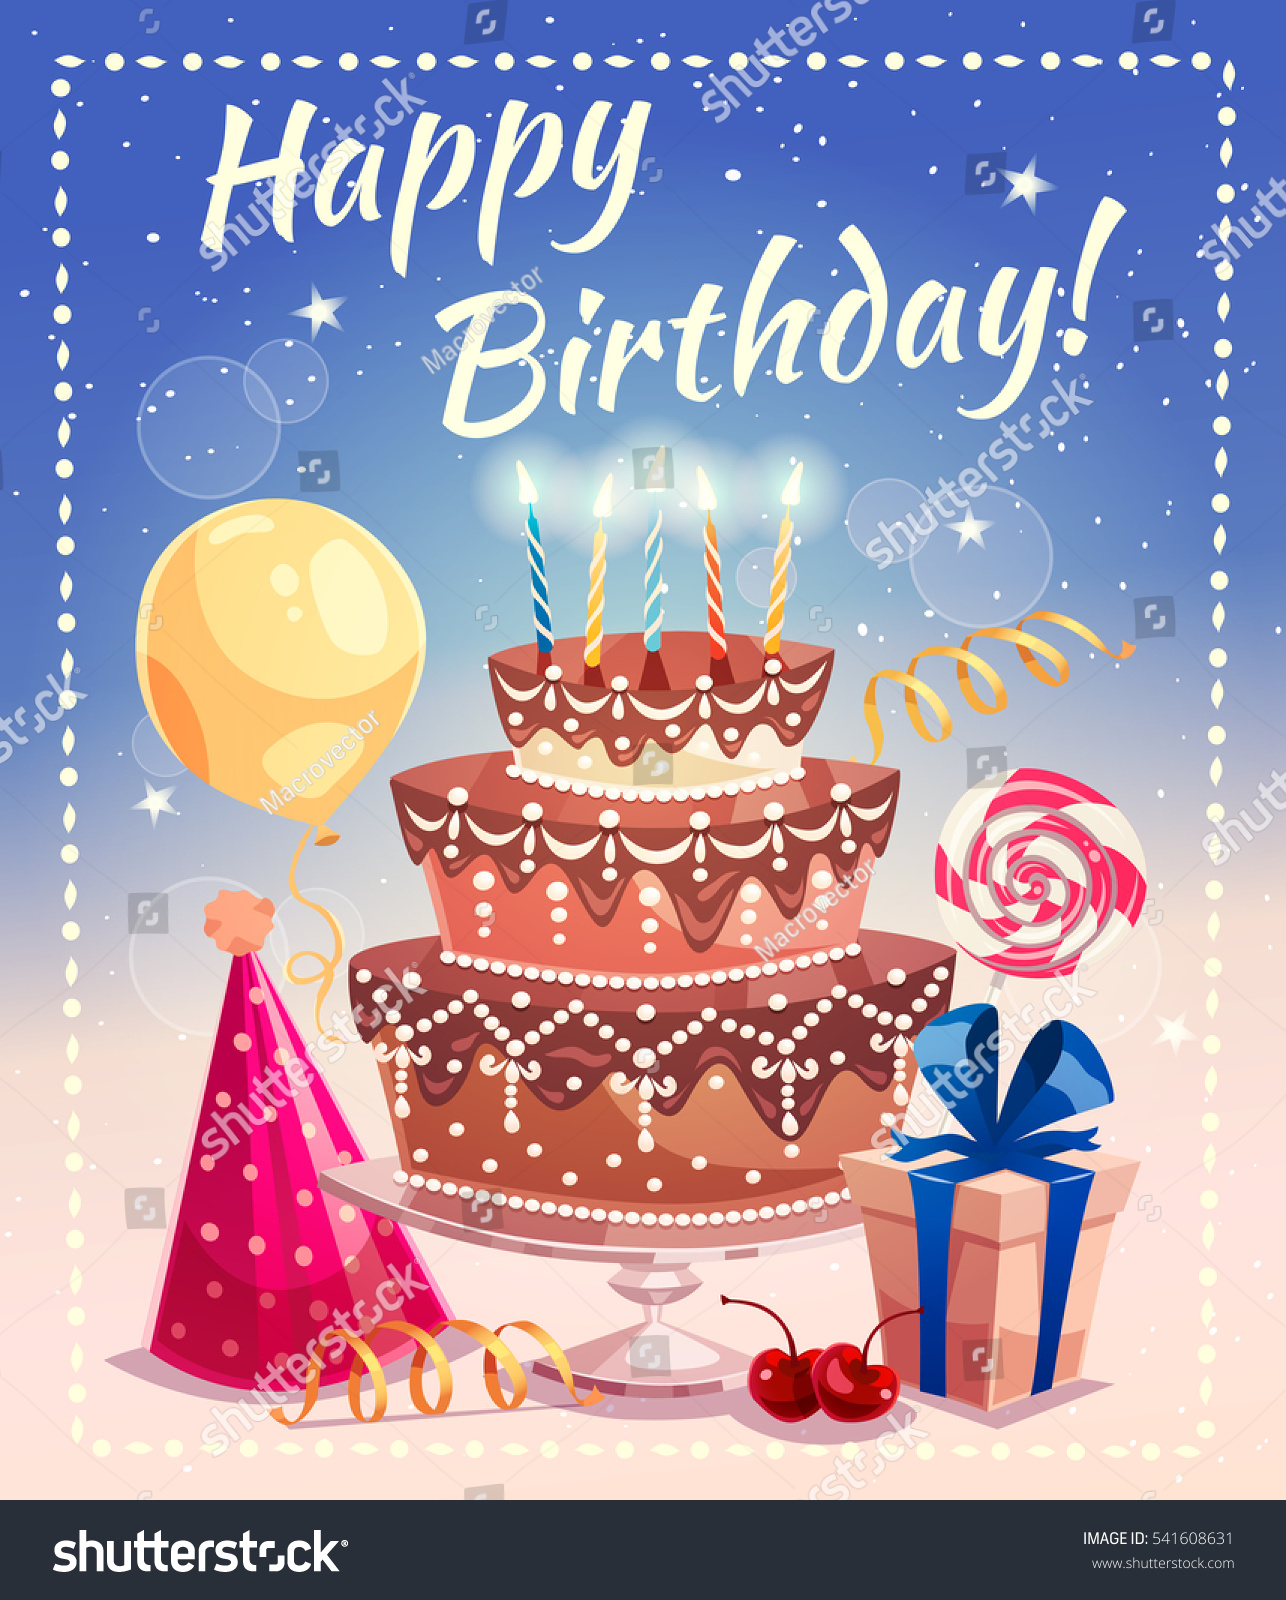 Happy Birthday Greeting Card Big Cake Stock Vector Royalty Free